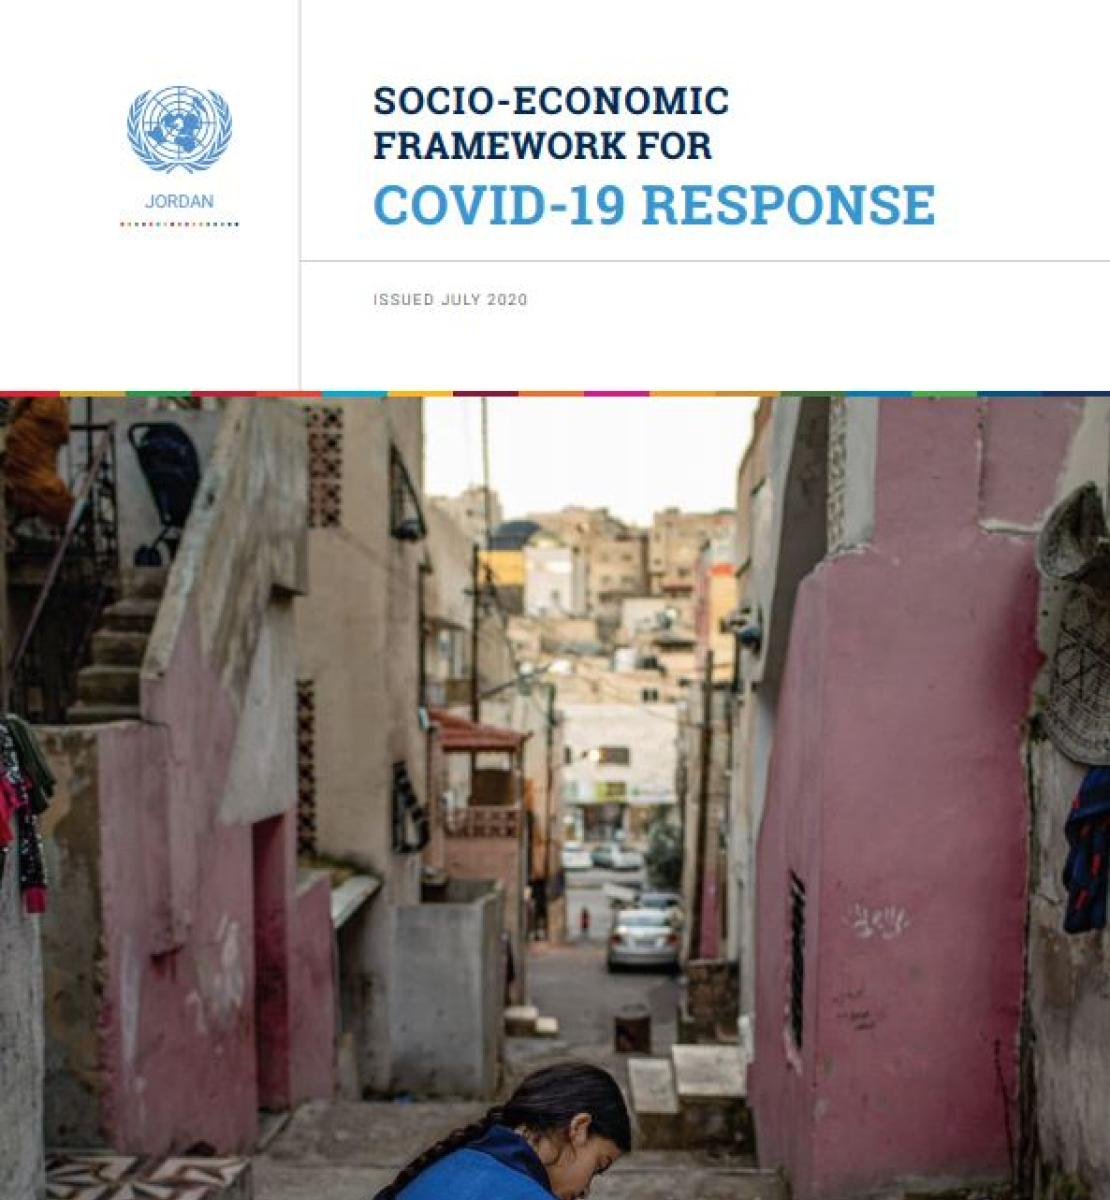 """Cover shows the the title, """"Socio-Economic Framework for COVID-19 Response for Jordan"""" with a image of a girl with a blue dress studying outside"""